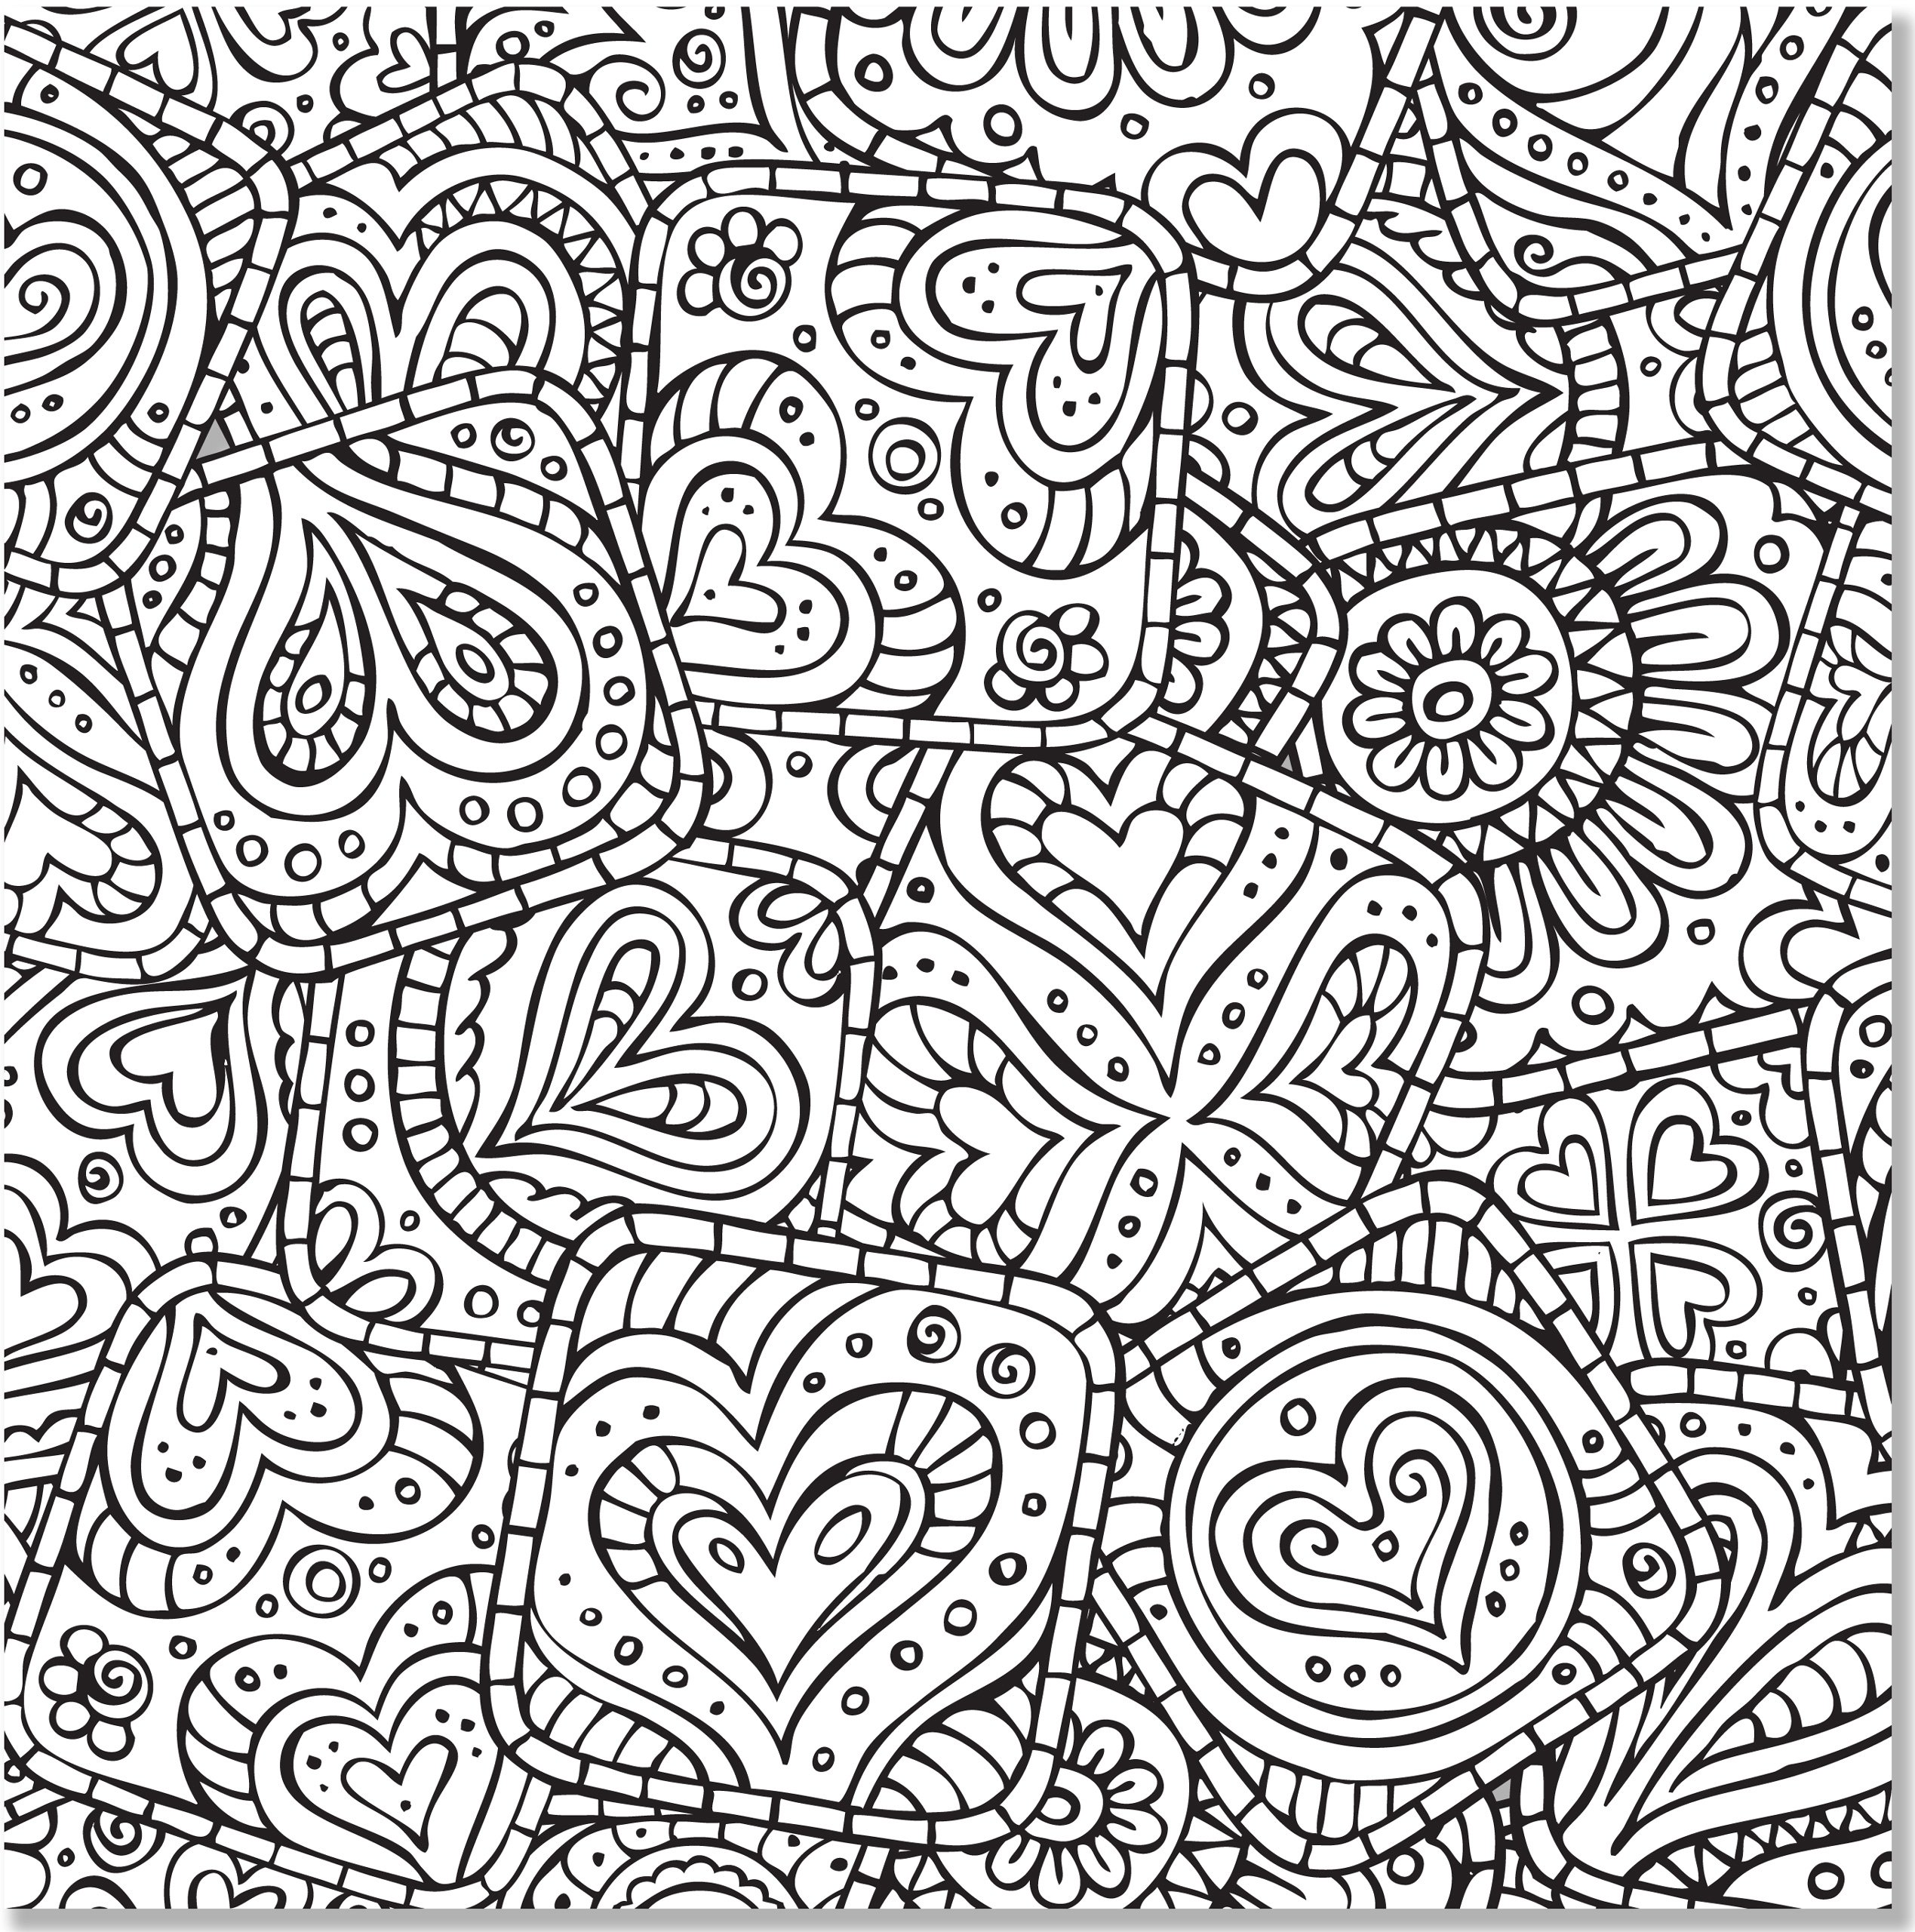 Coloring book download zip - Amazon Com Doodle Designs Adult Coloring Book 31 Stress Relieving Designs Studio 9781441317469 Peter Pauper Press Books